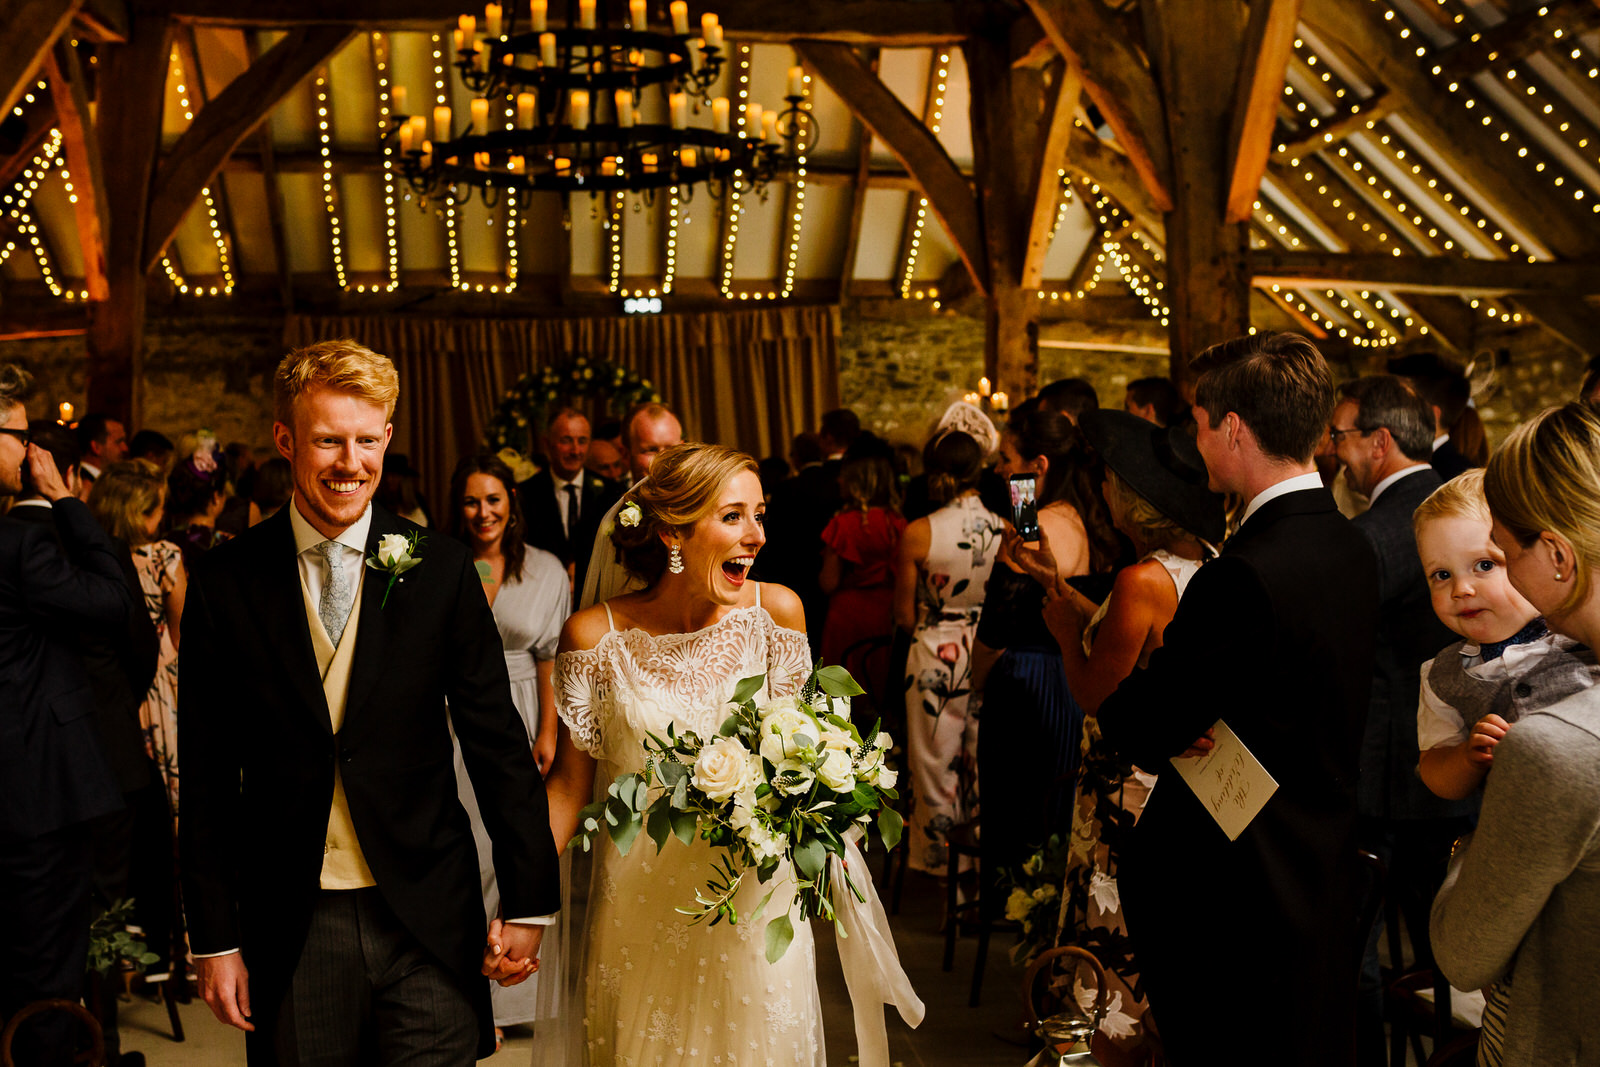 Tithe Barn- Tim Dunk Photography- 17.08.2018- Sonia & Sean-269.jpg